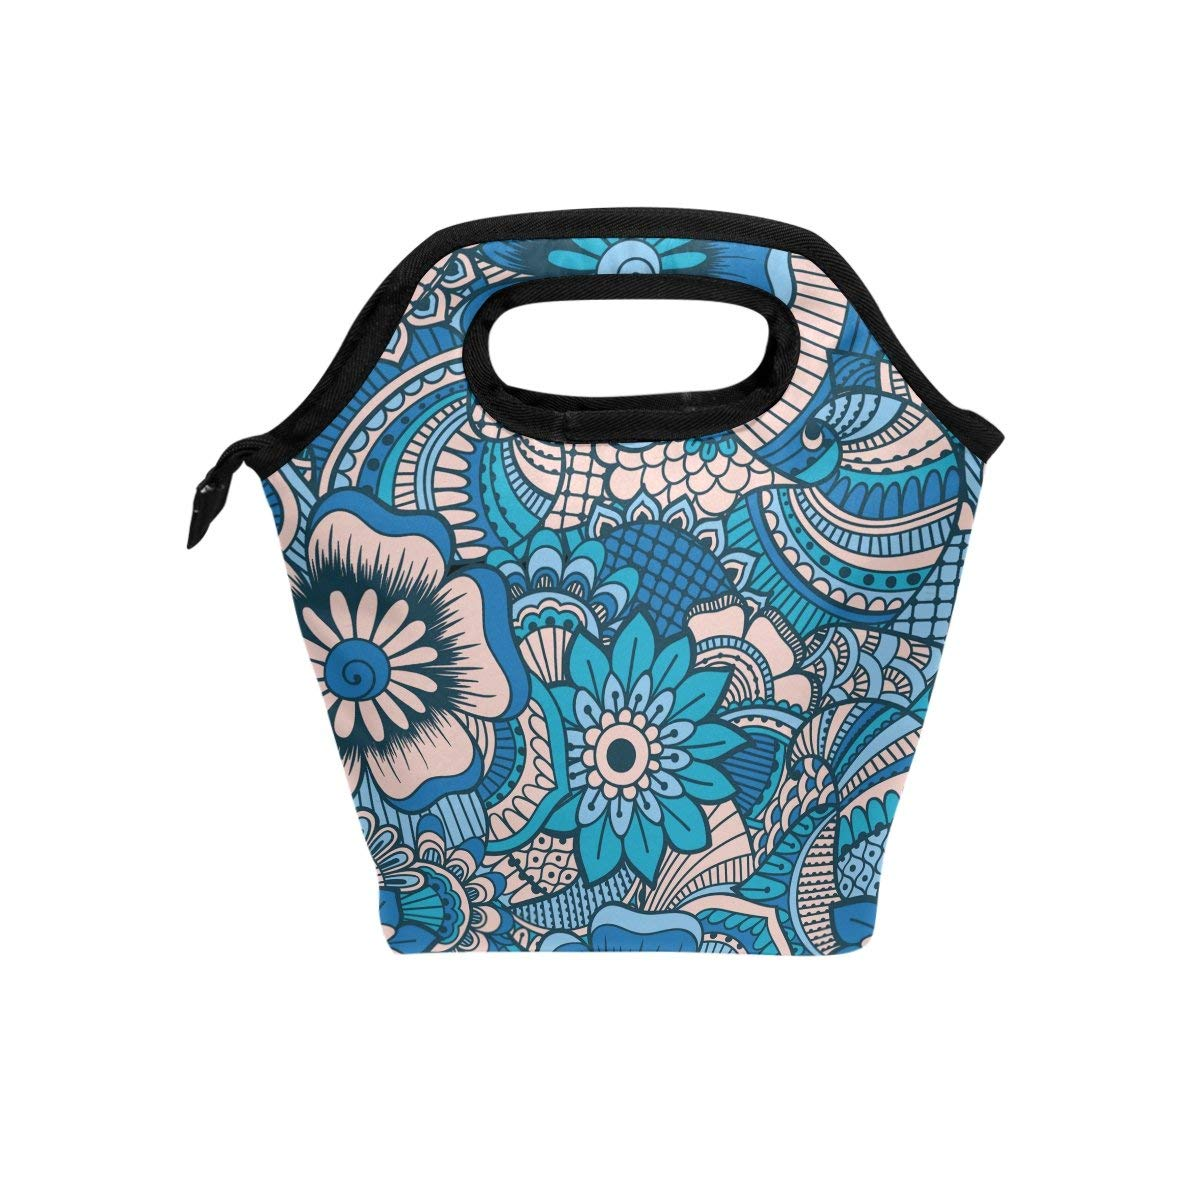 b9b79f491 Get Quotations · FOLLPY Vintage Ethnic Boho Floral Print Lunch Bag Cooler  Insulated Lunchbox Handbag Tote Bag with Zipper